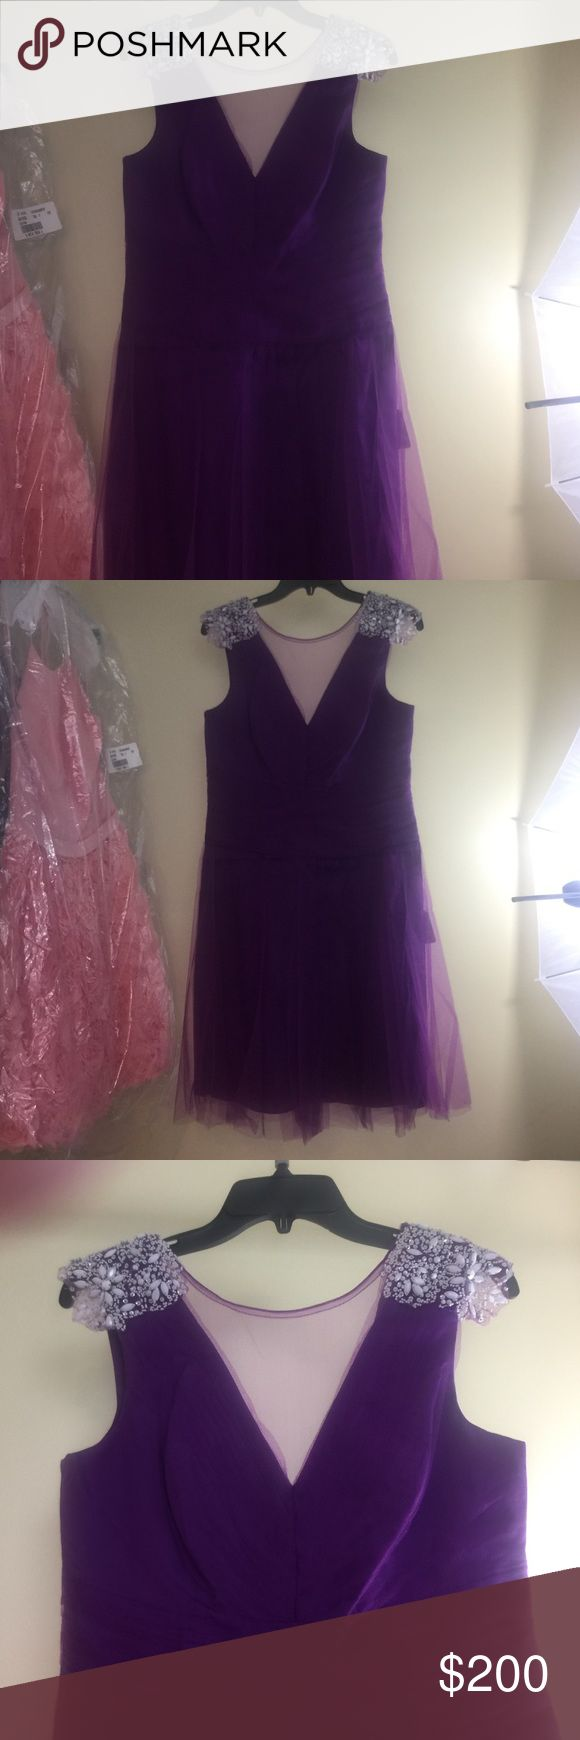 Brand new Beautiful  Kathy Hilton Dress!  👗👗 New authentic Kathy Hilton Short purple dress. Kathy Hilton Dresses